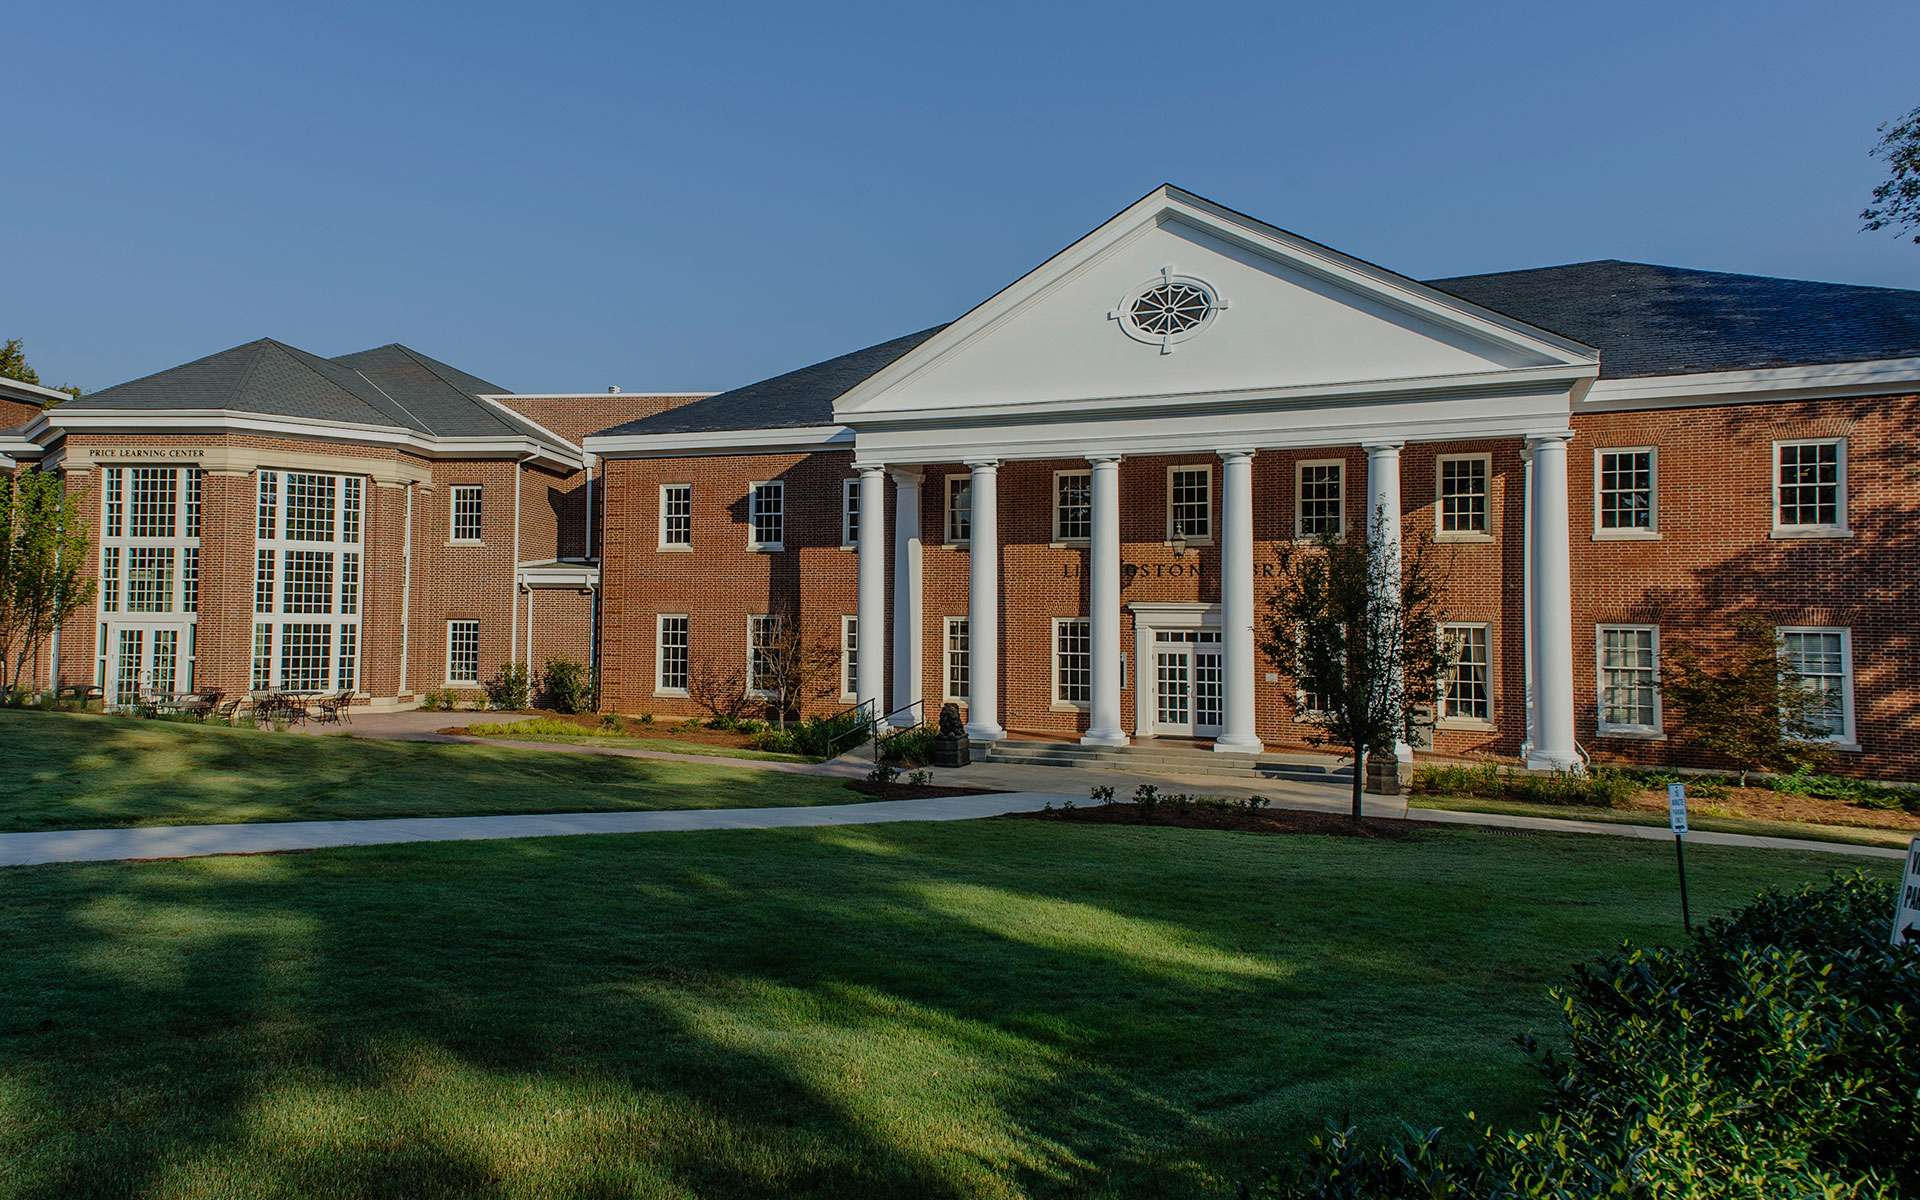 Livingston Library and Price Learning Center